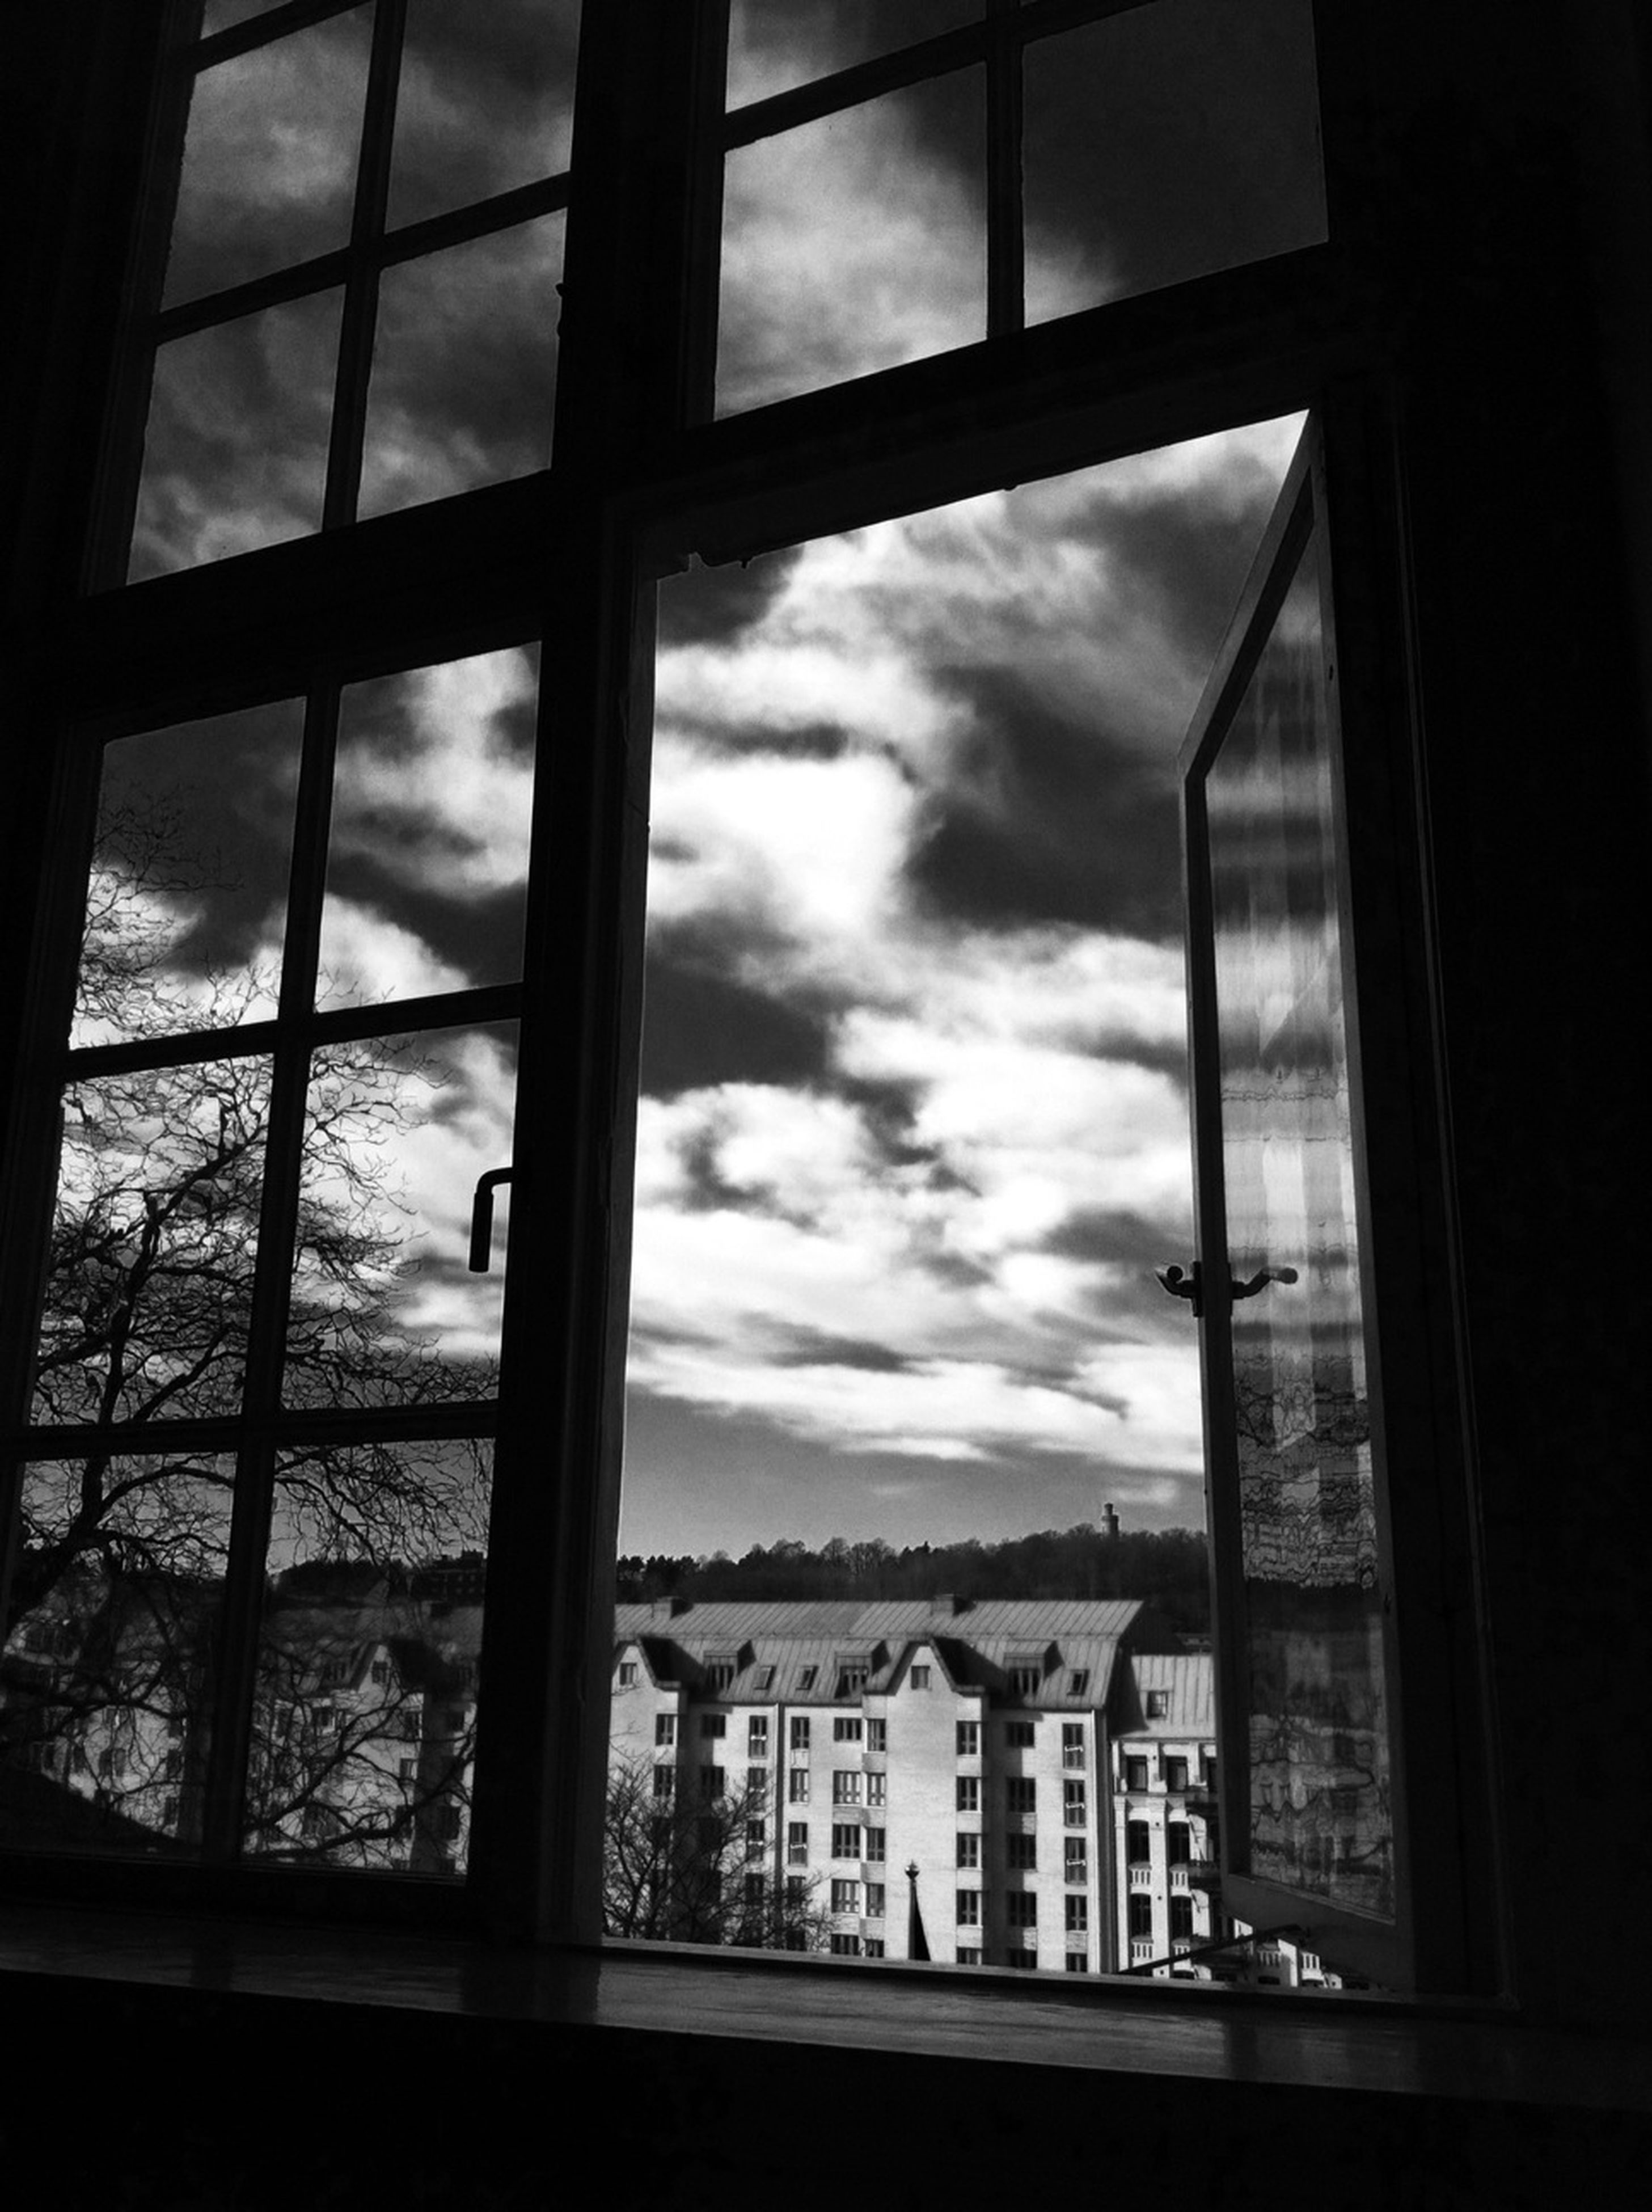 window, architecture, indoors, built structure, sky, cloud - sky, glass - material, transparent, building exterior, cloudy, cloud, day, weather, building, overcast, water, city, reflection, no people, looking through window